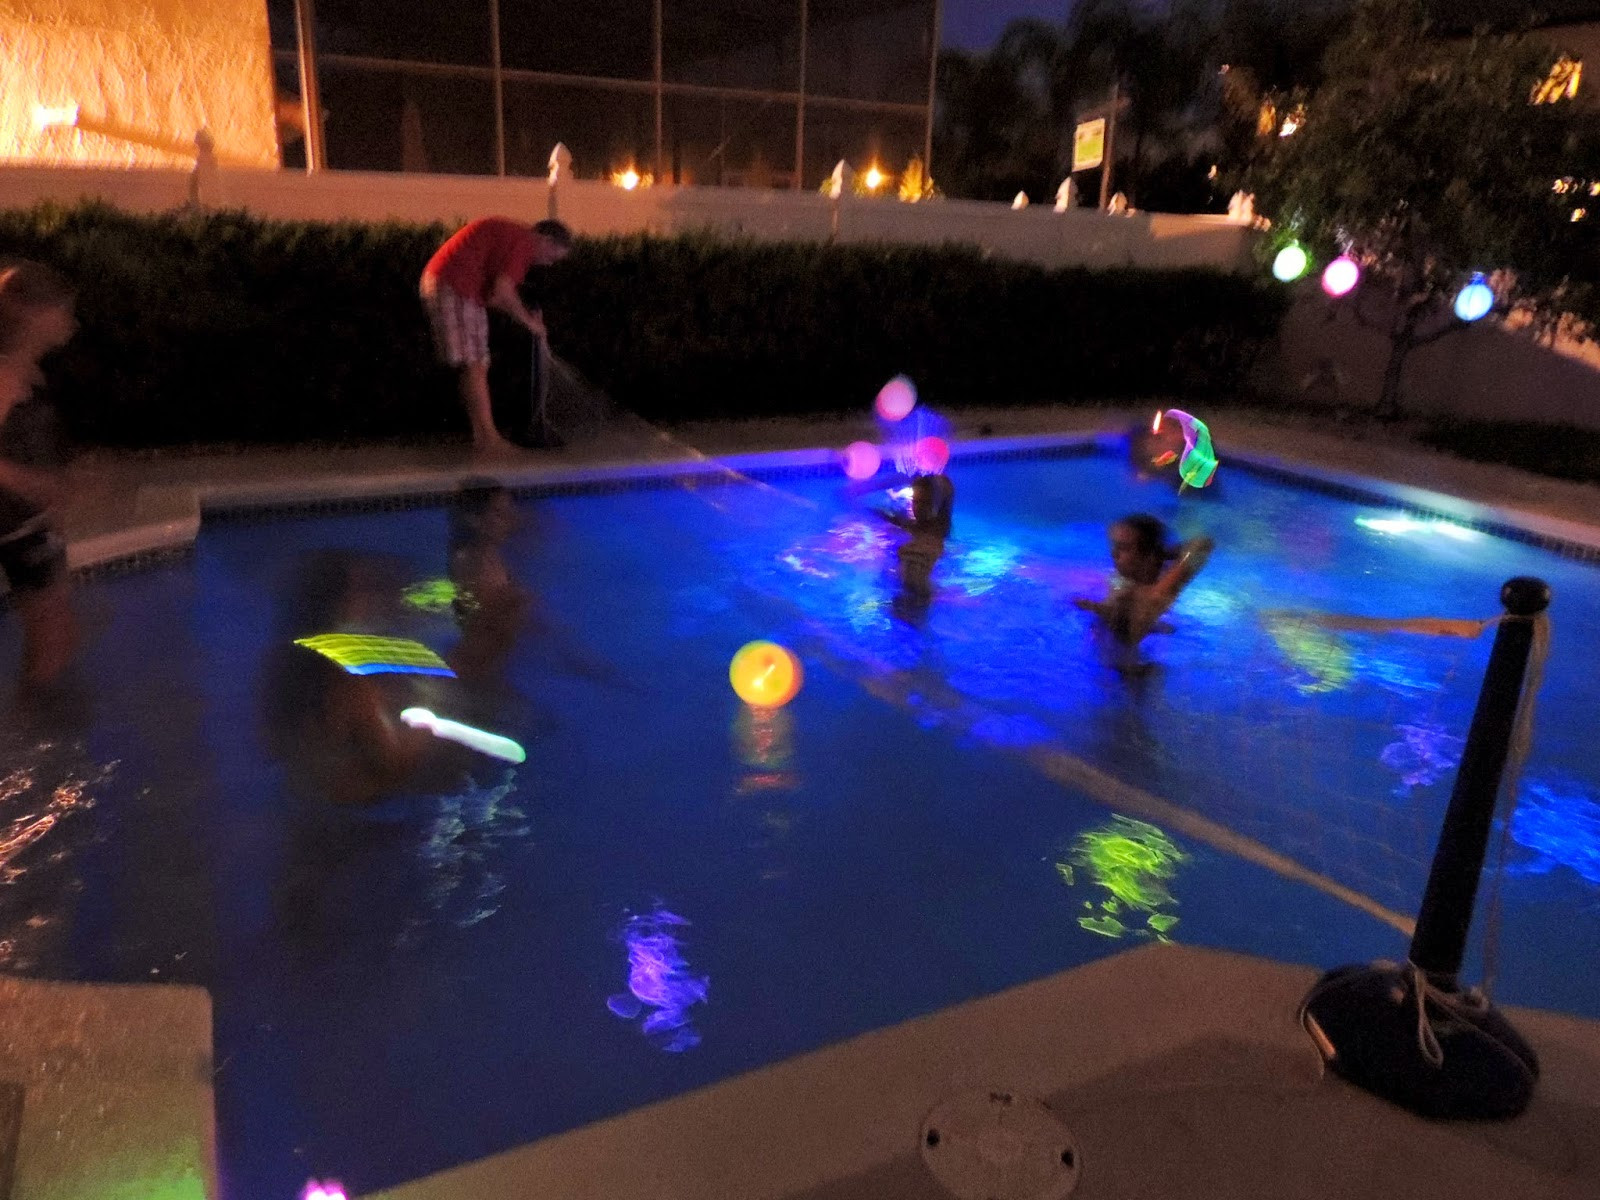 Night Pool Party Ideas For Adults  Juliana Grace Blog Space Glow in the Dark Pool Party